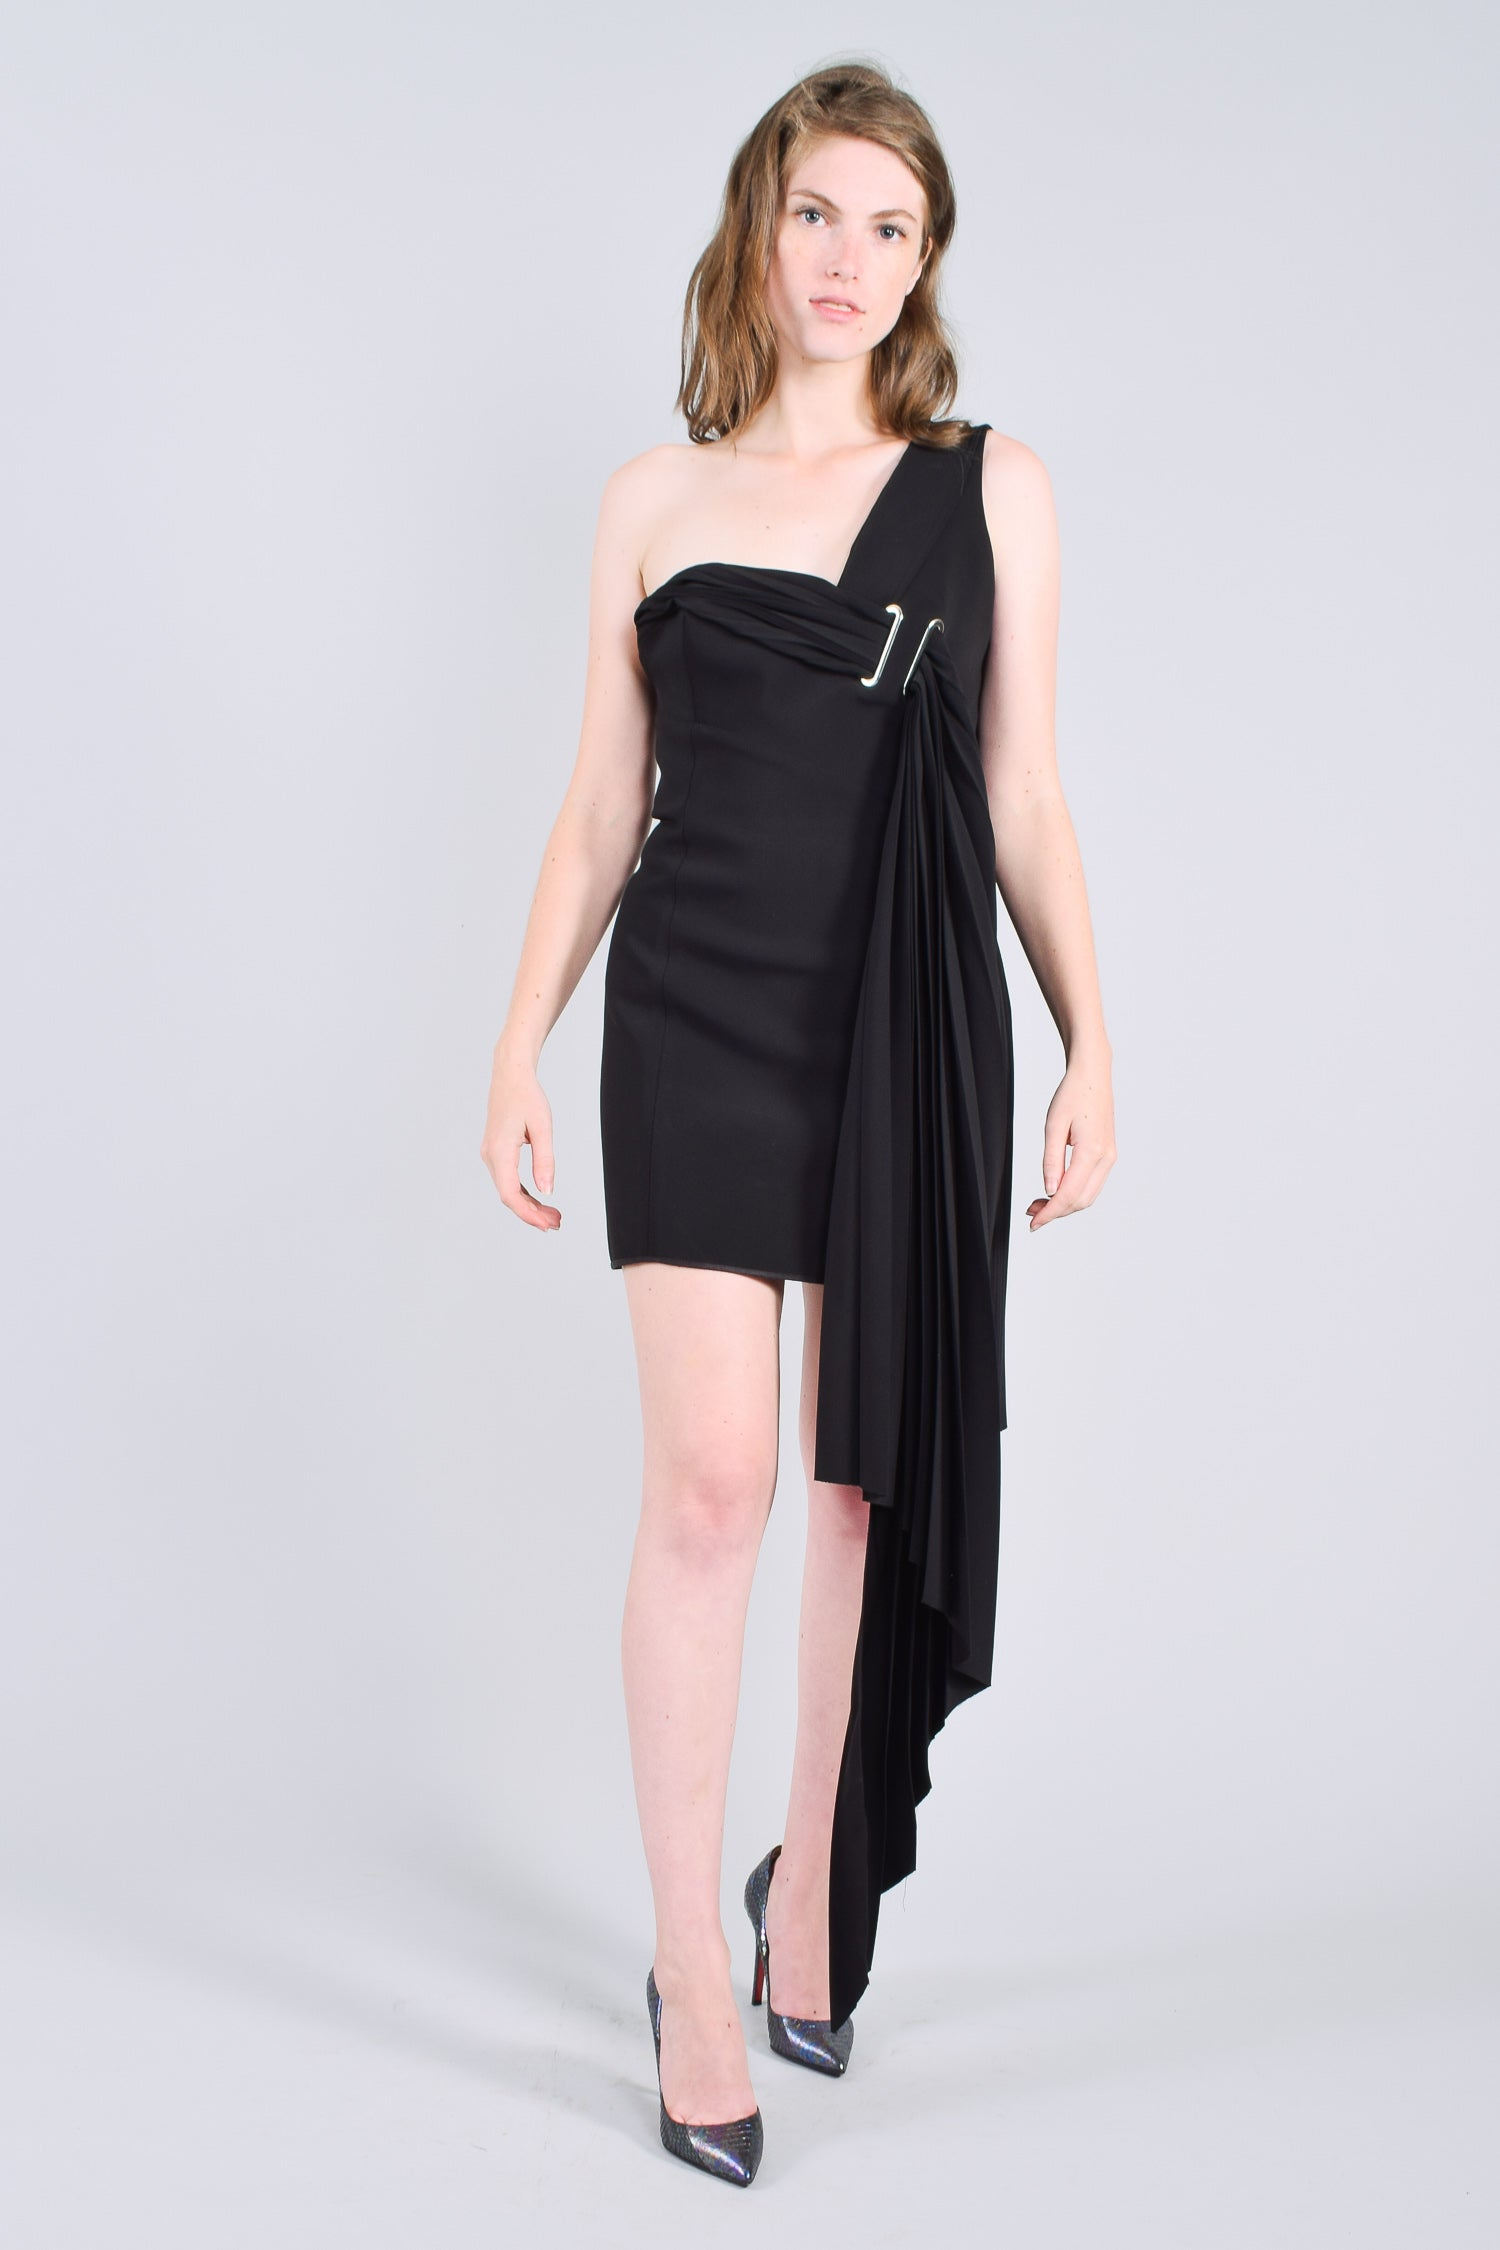 Anthony Vaccarello Black Mini Dress w/ Pleated Details Size S